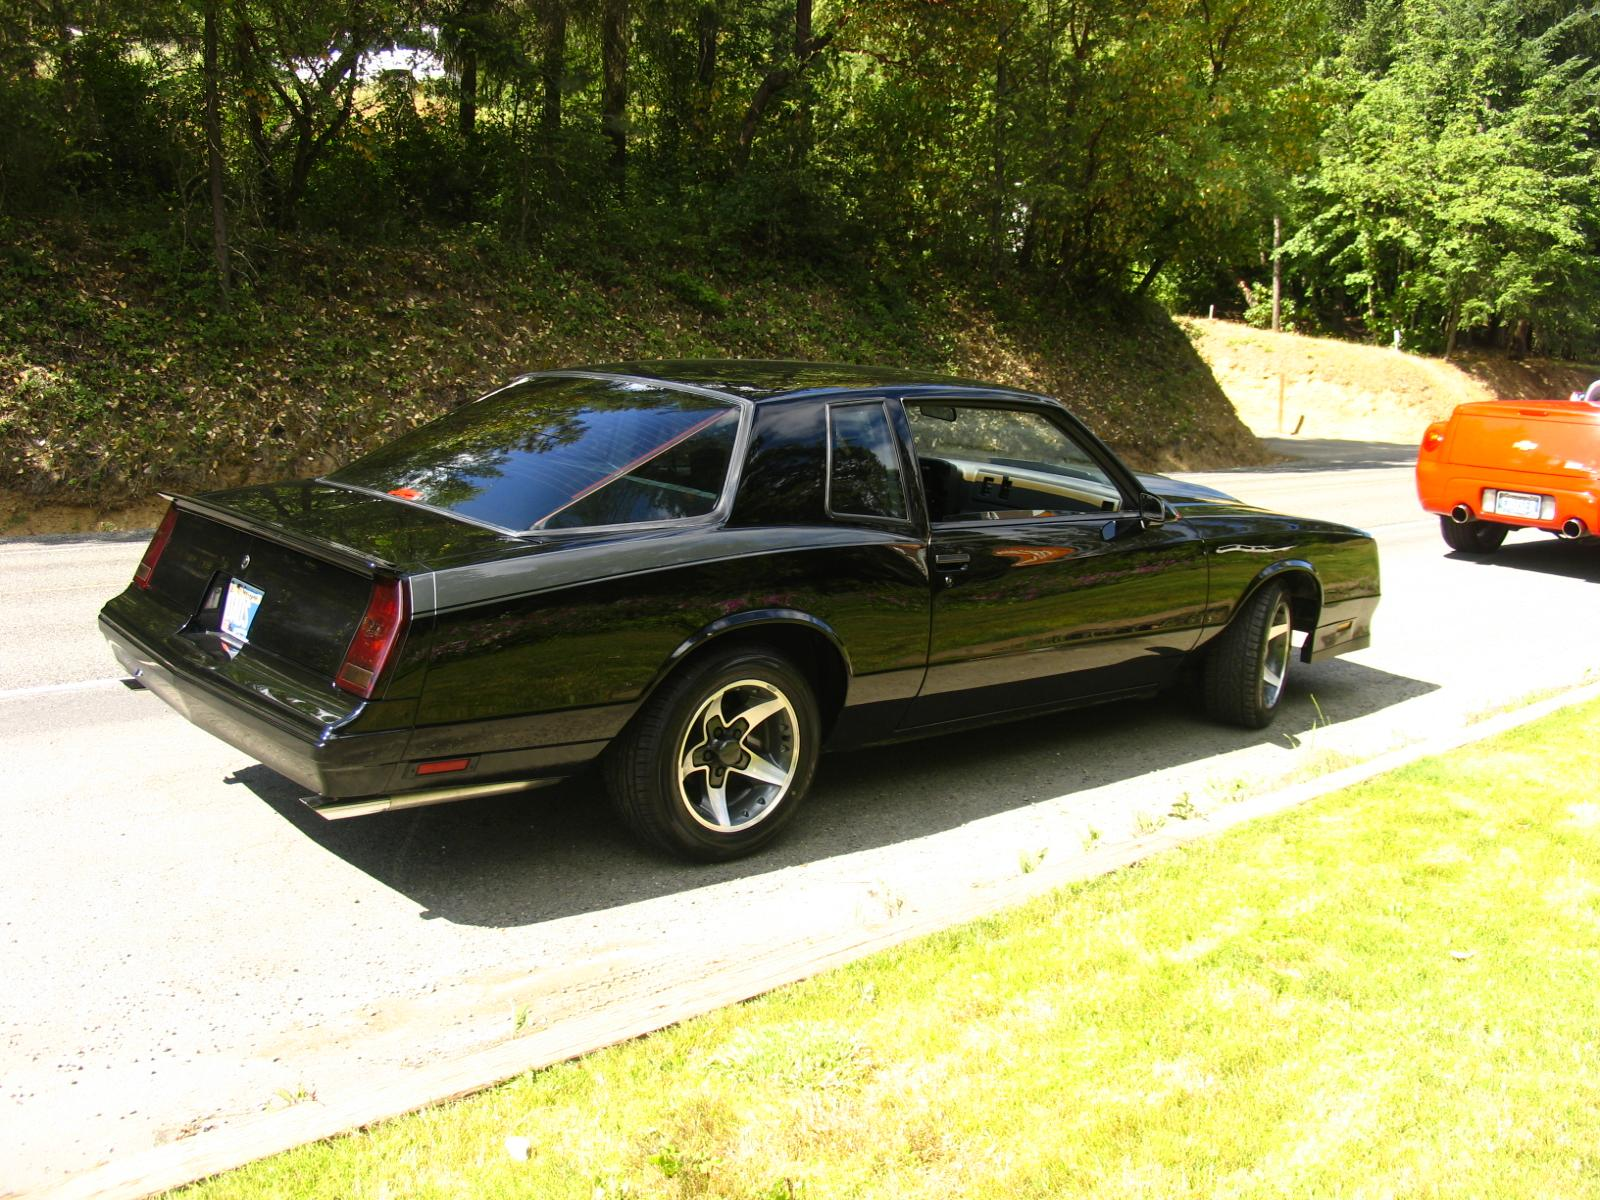 Another 550a6 1987 Chevrolet Monte Carlo post... - 14067555